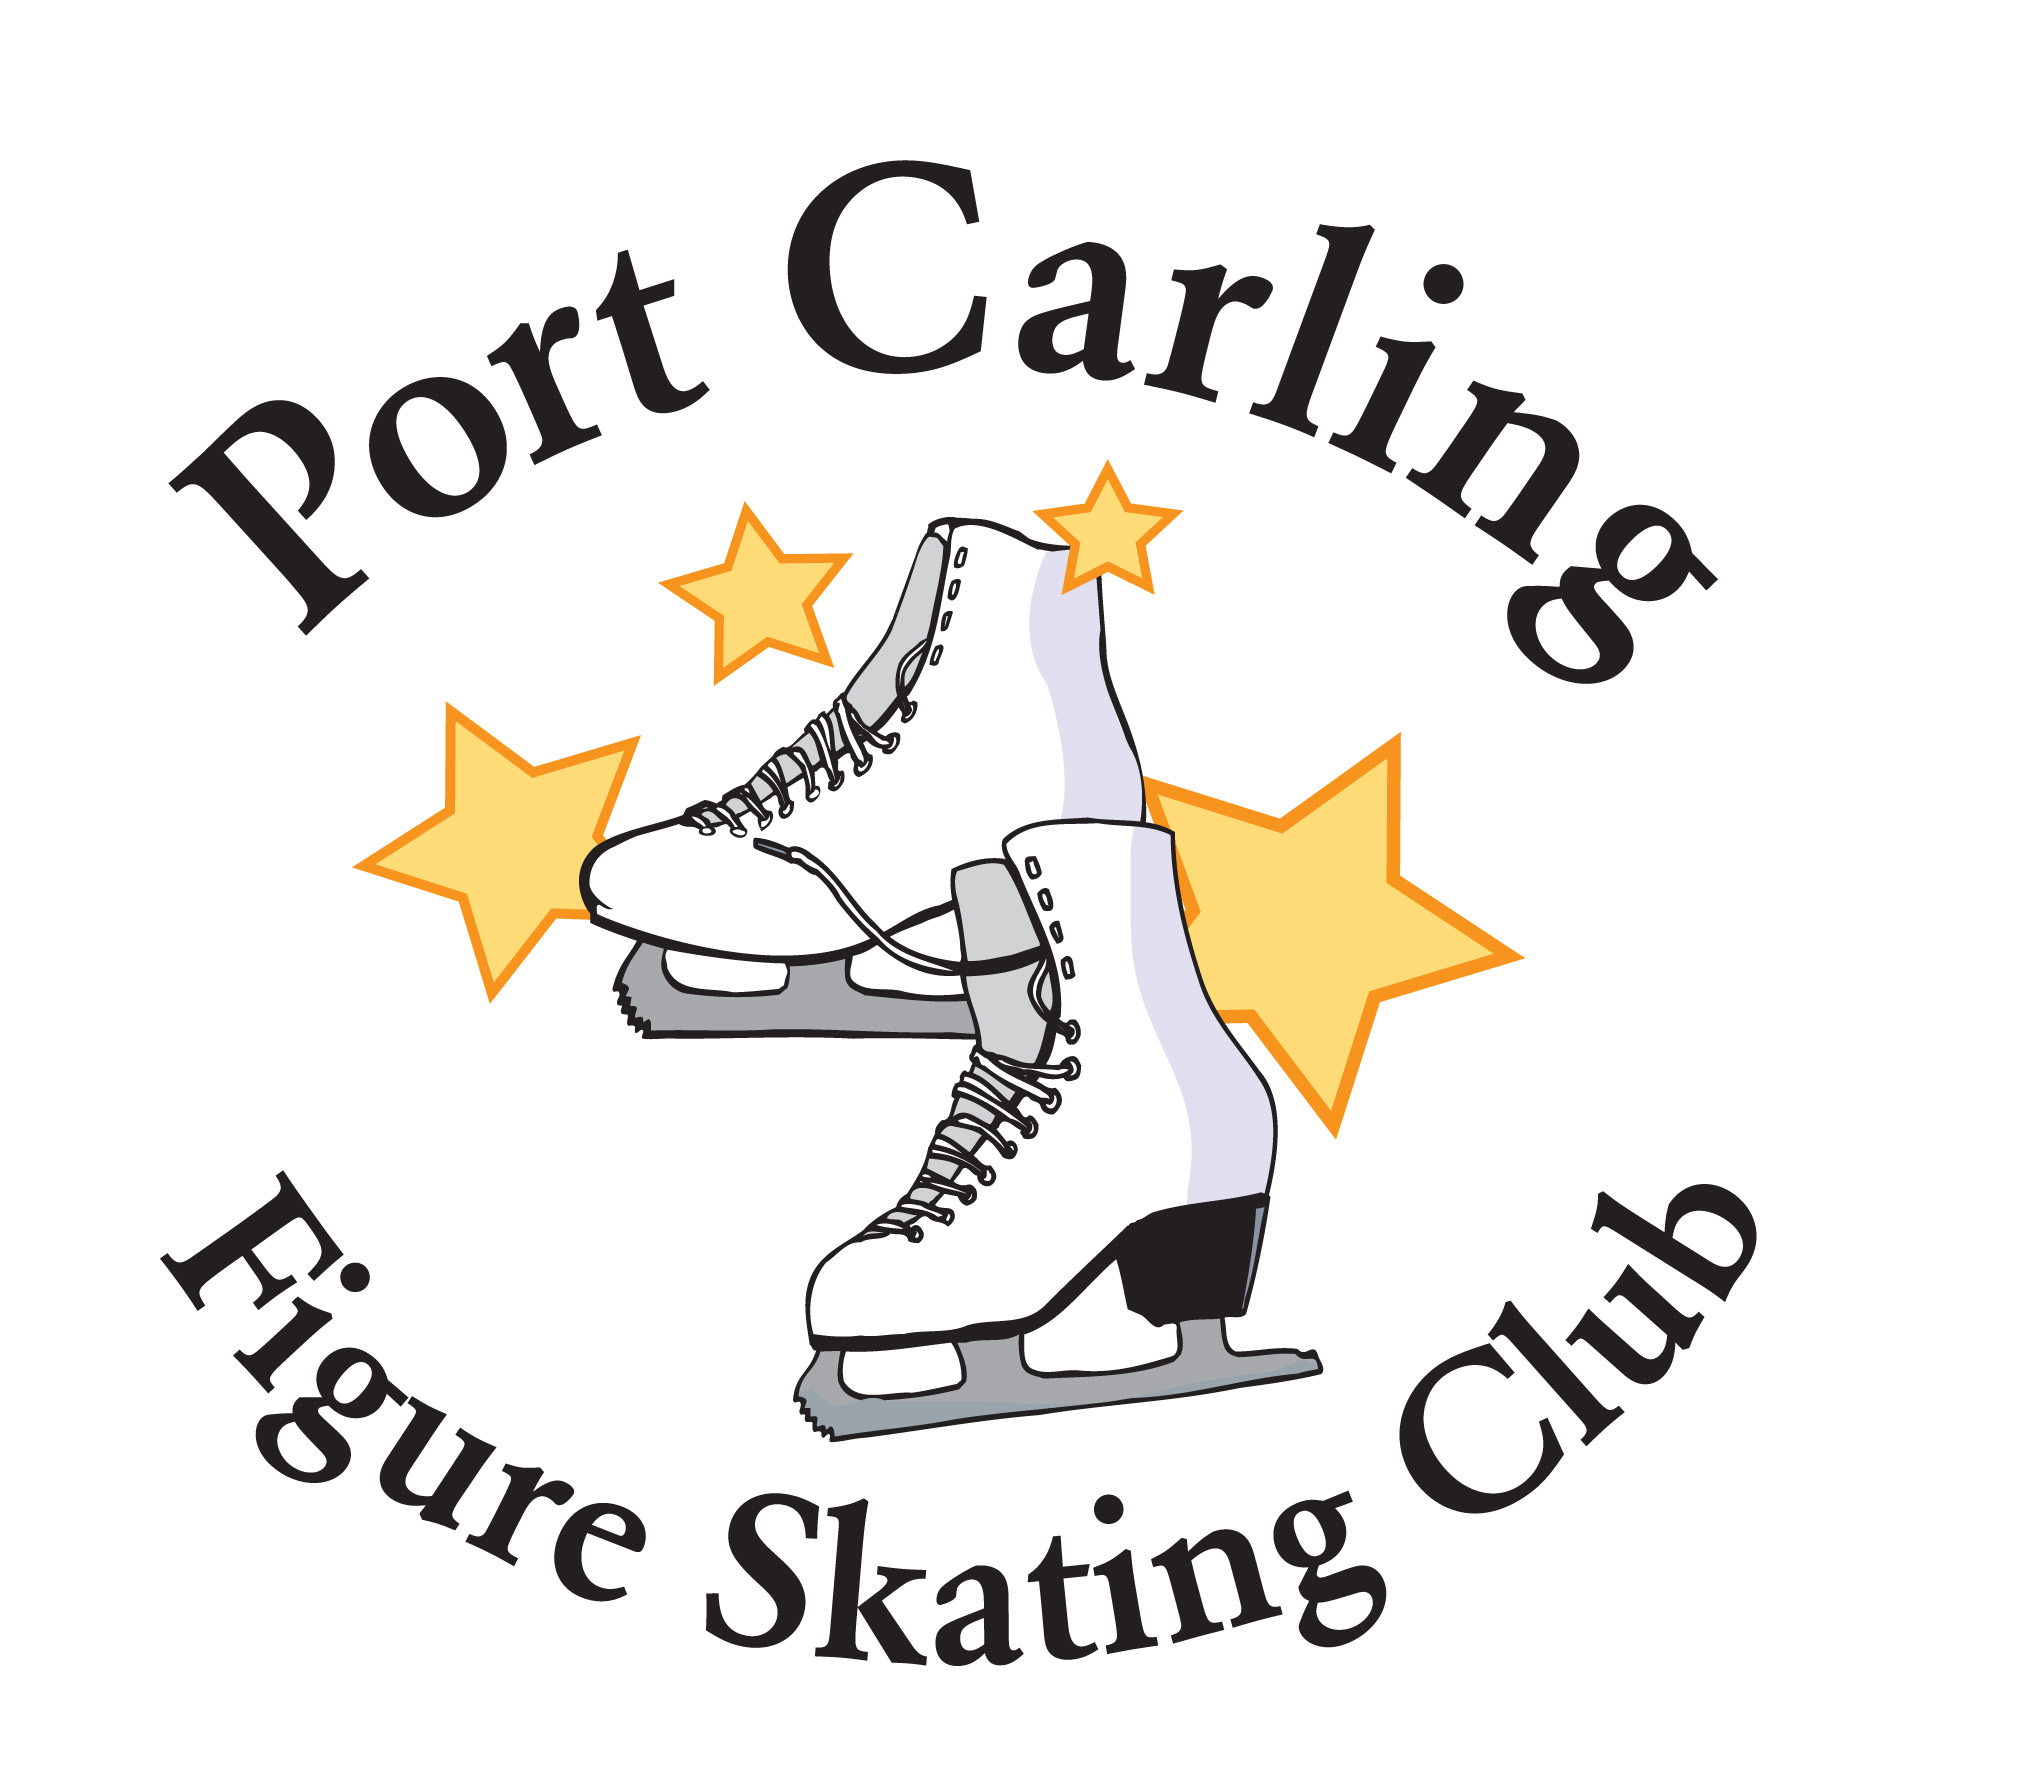 Port Carling Skating Club